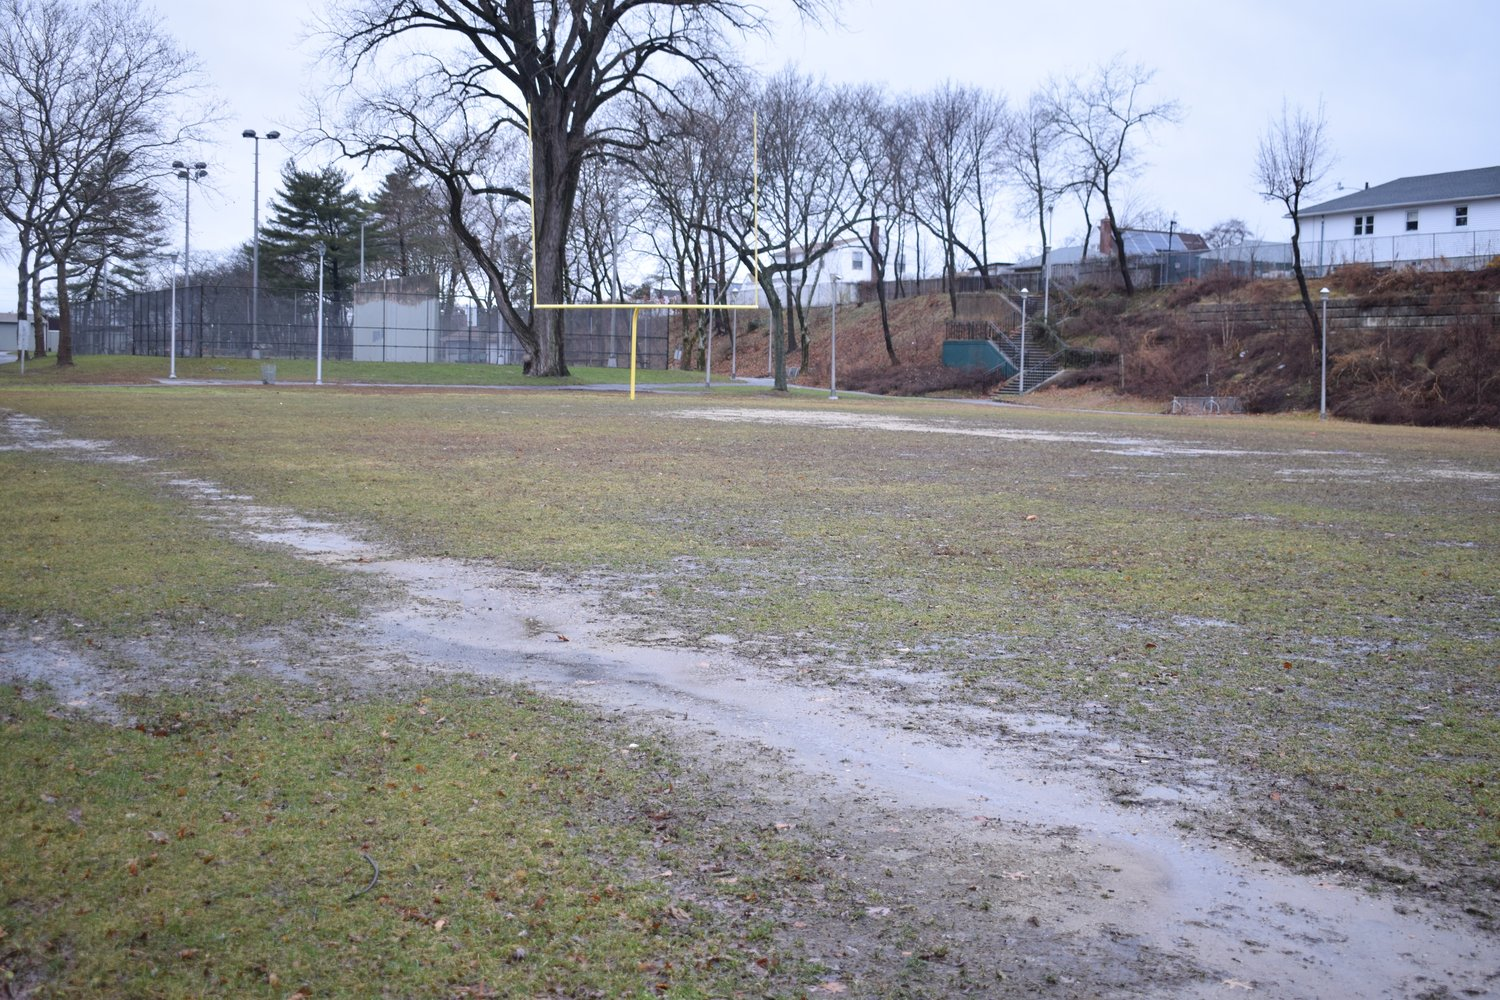 The field in Elmont Road Park has been left torn up by years of use and mismanagement. The Elmont Cardinals can no longer play on this field.